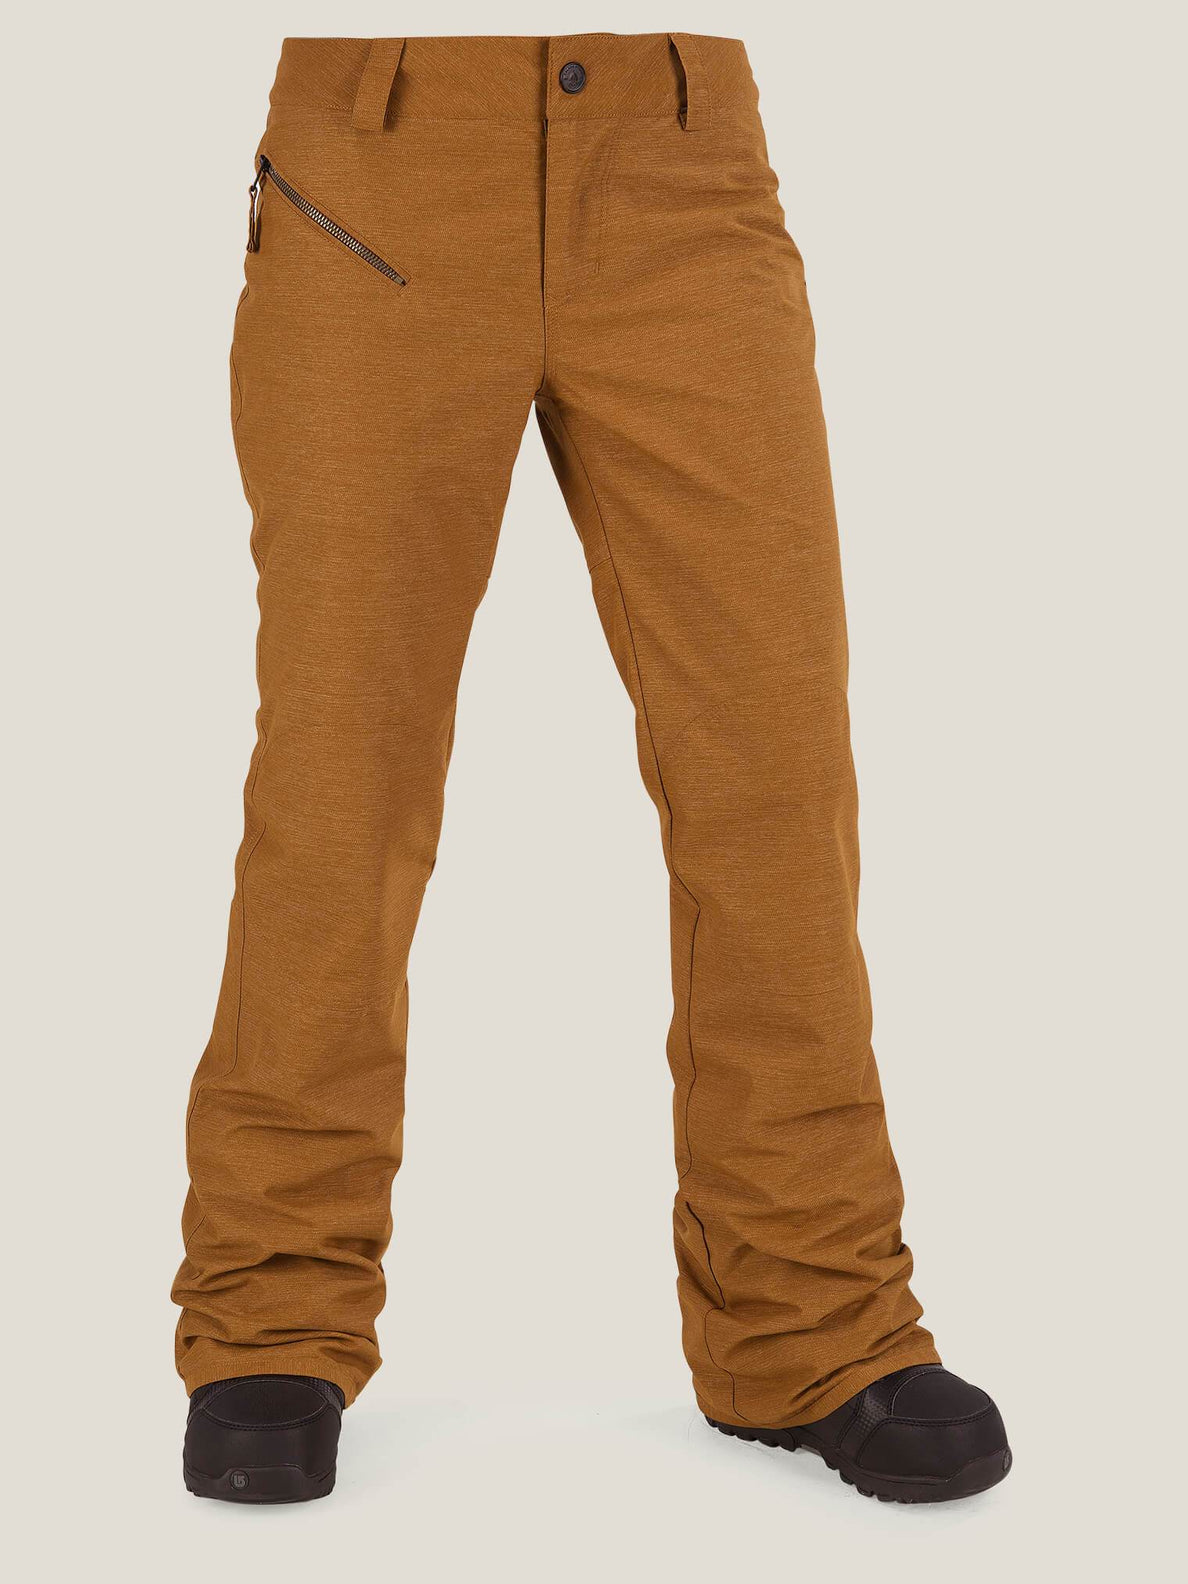 Pinto Pant In Copper, Front View